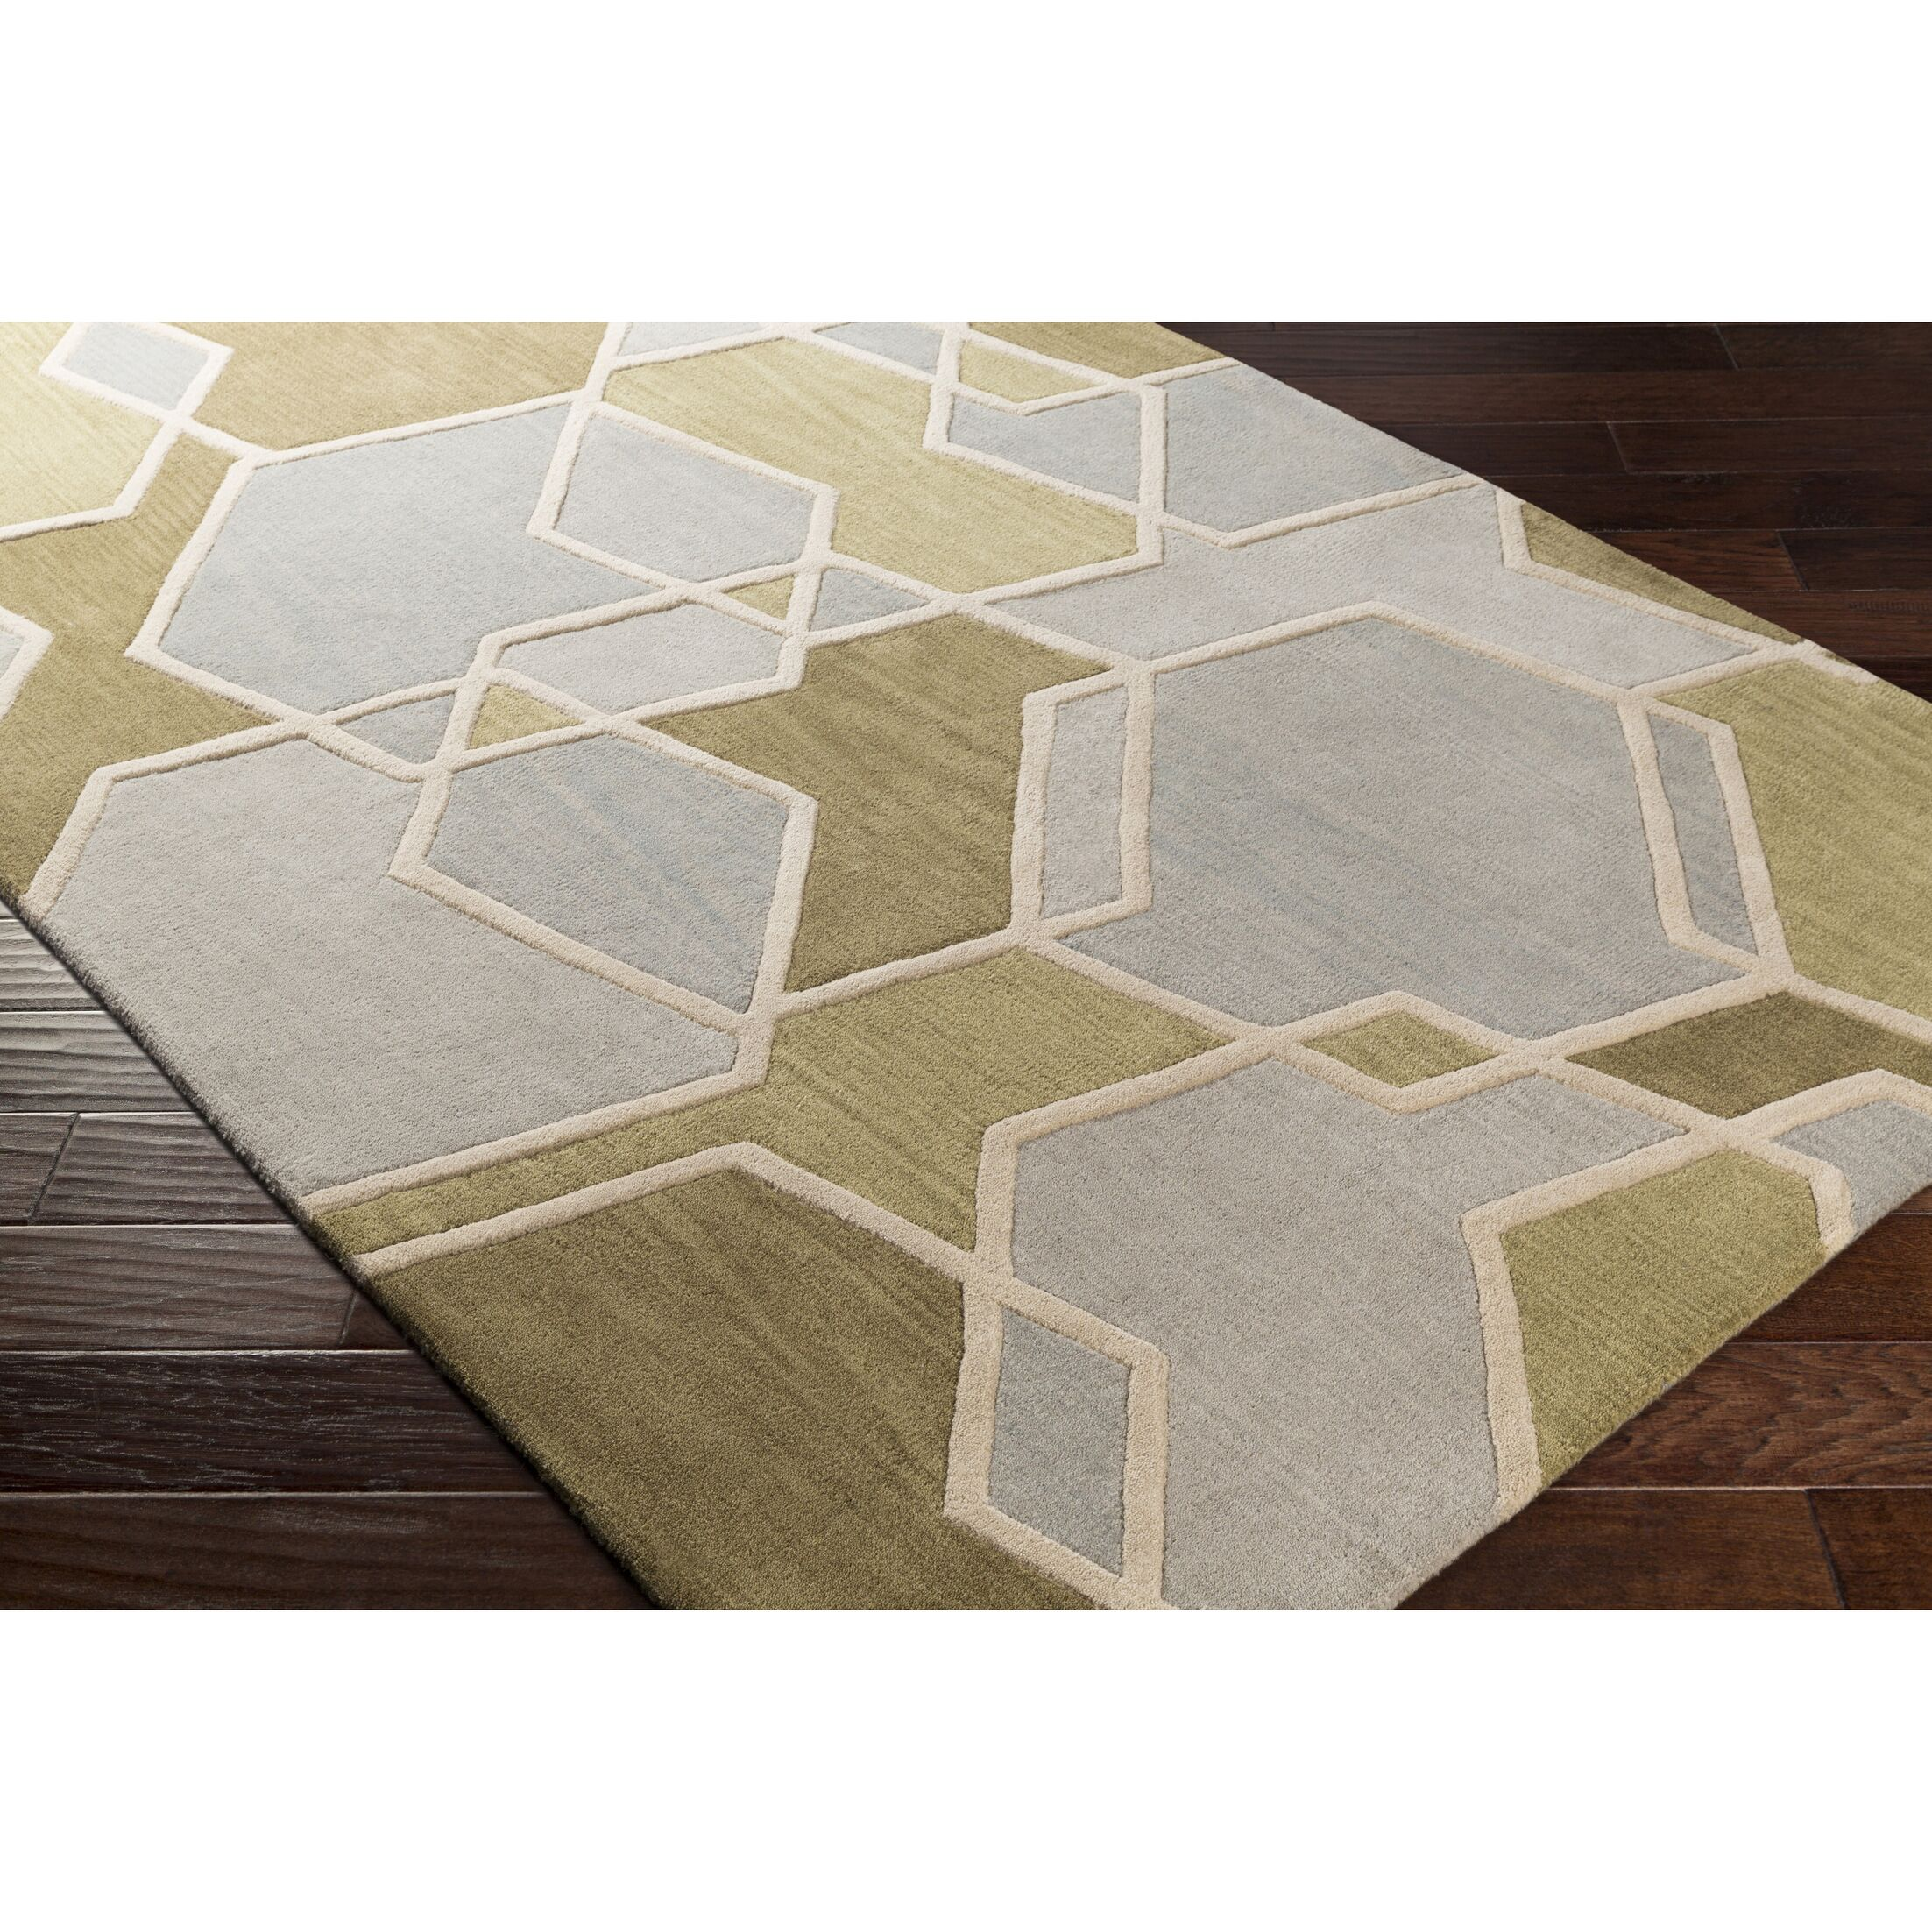 Vaughan Hand-Tufted Gray/Green Area Rug Rug Size: Runner 2'6